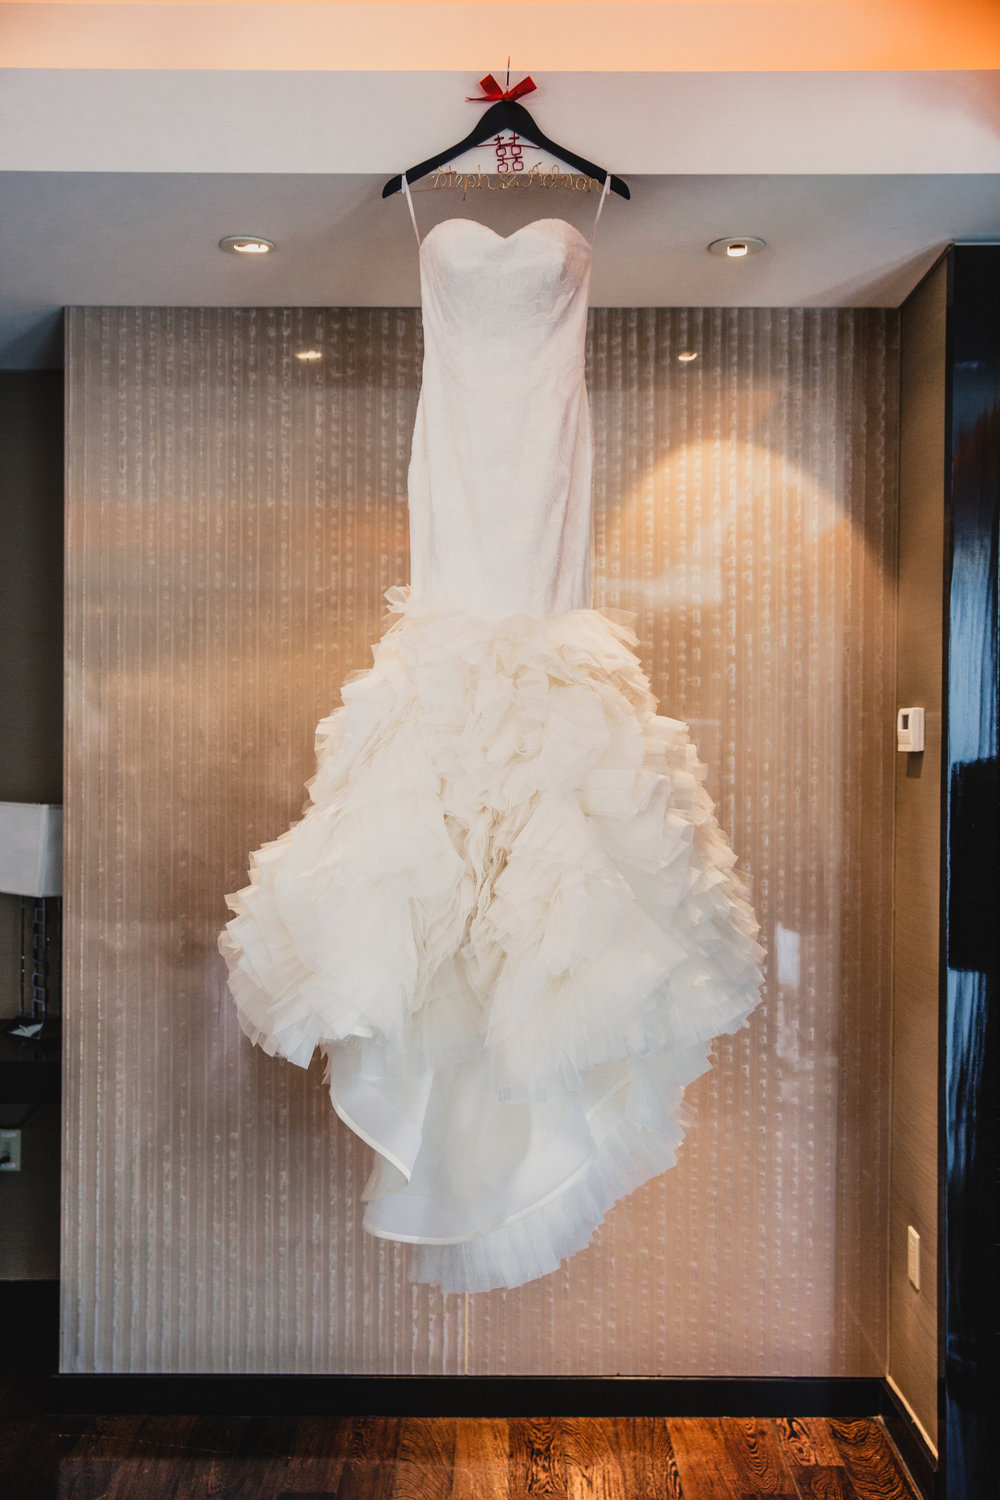 Vera Wang Wedding Dress.  Luxury wedding at the Mandarin Oriental with a color scheme of white, blush, and pops of wine red produced by Las Vegas Wedding Planner Andrea Eppolito with photos by Stephen Salazar Photography.